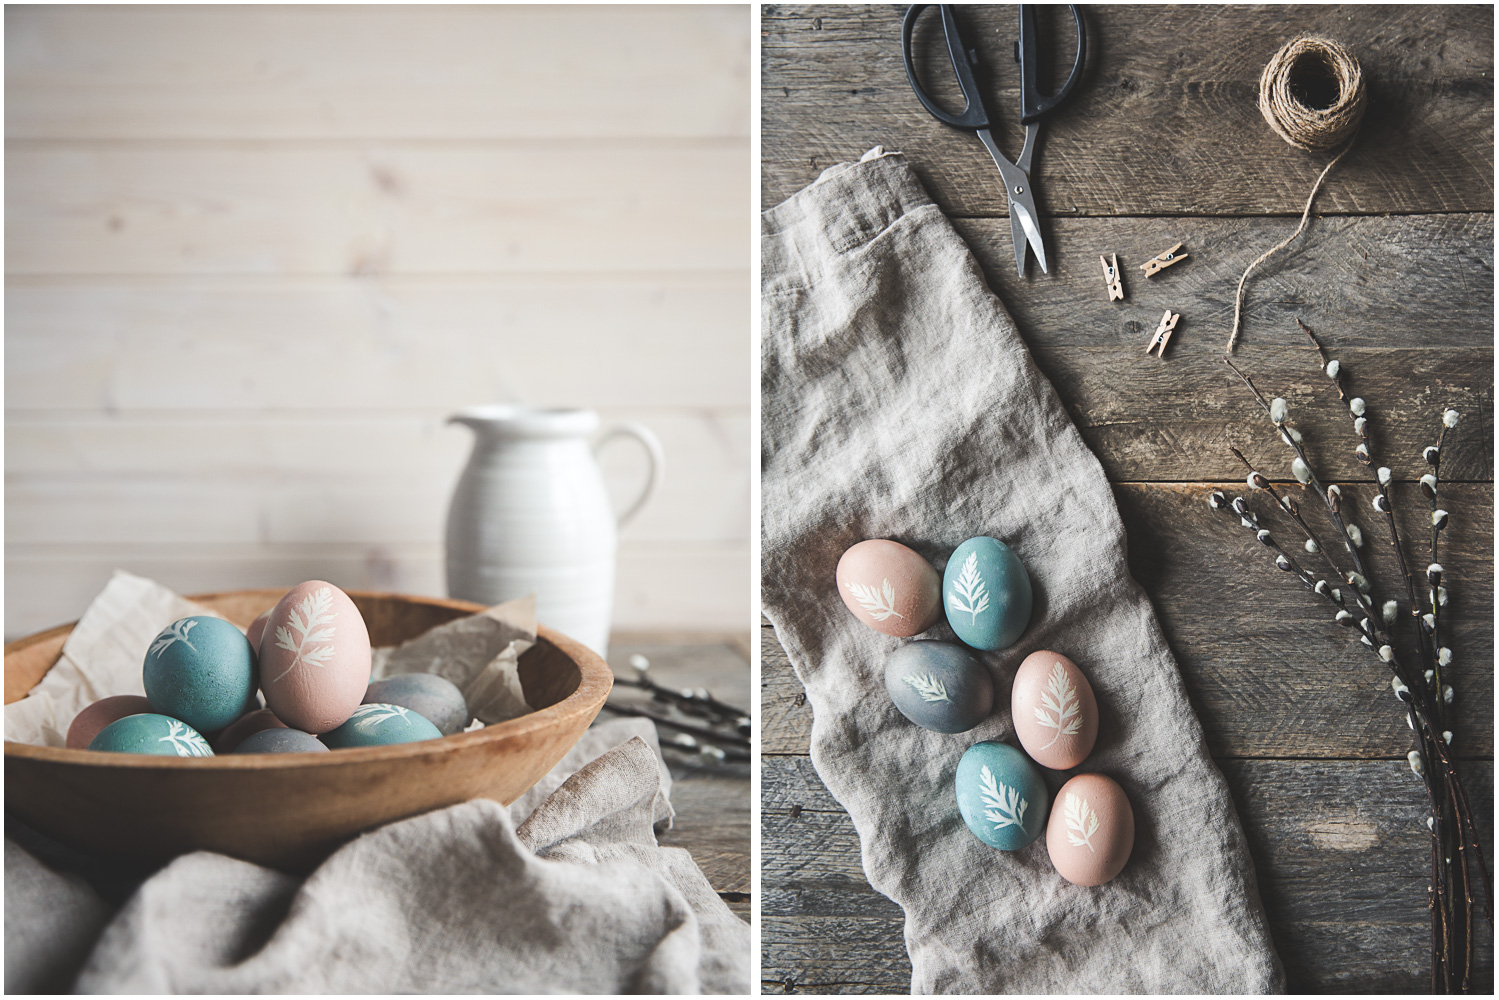 08_Bragg_Kate_Easter_Egg_Natural_Dye.jpg